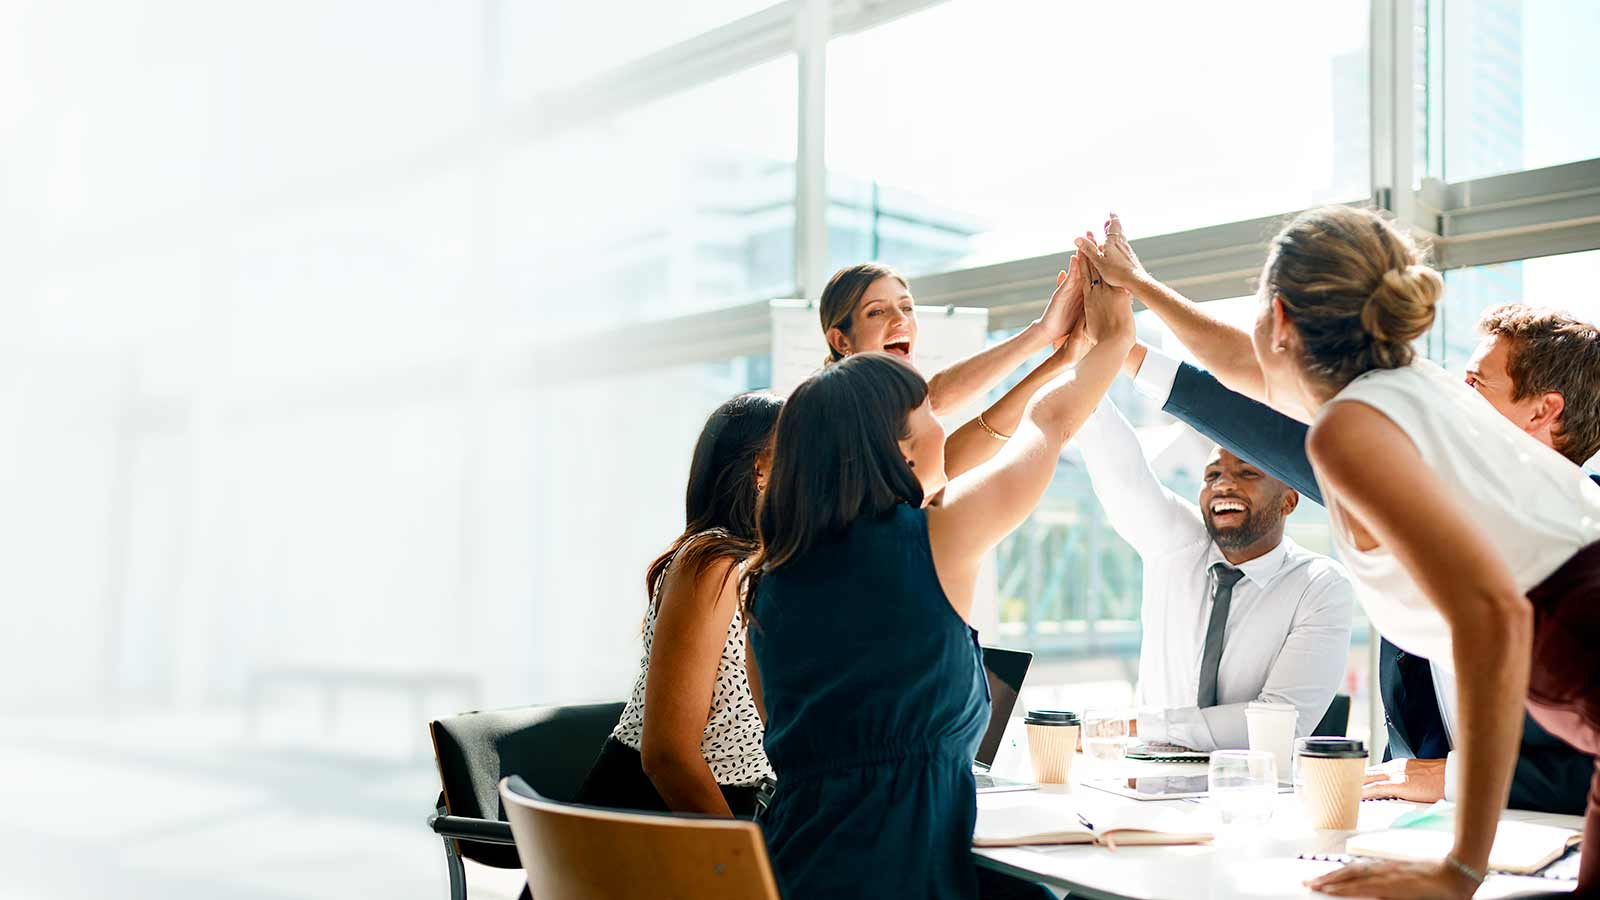 An excited group of people high five each other at a conference table.